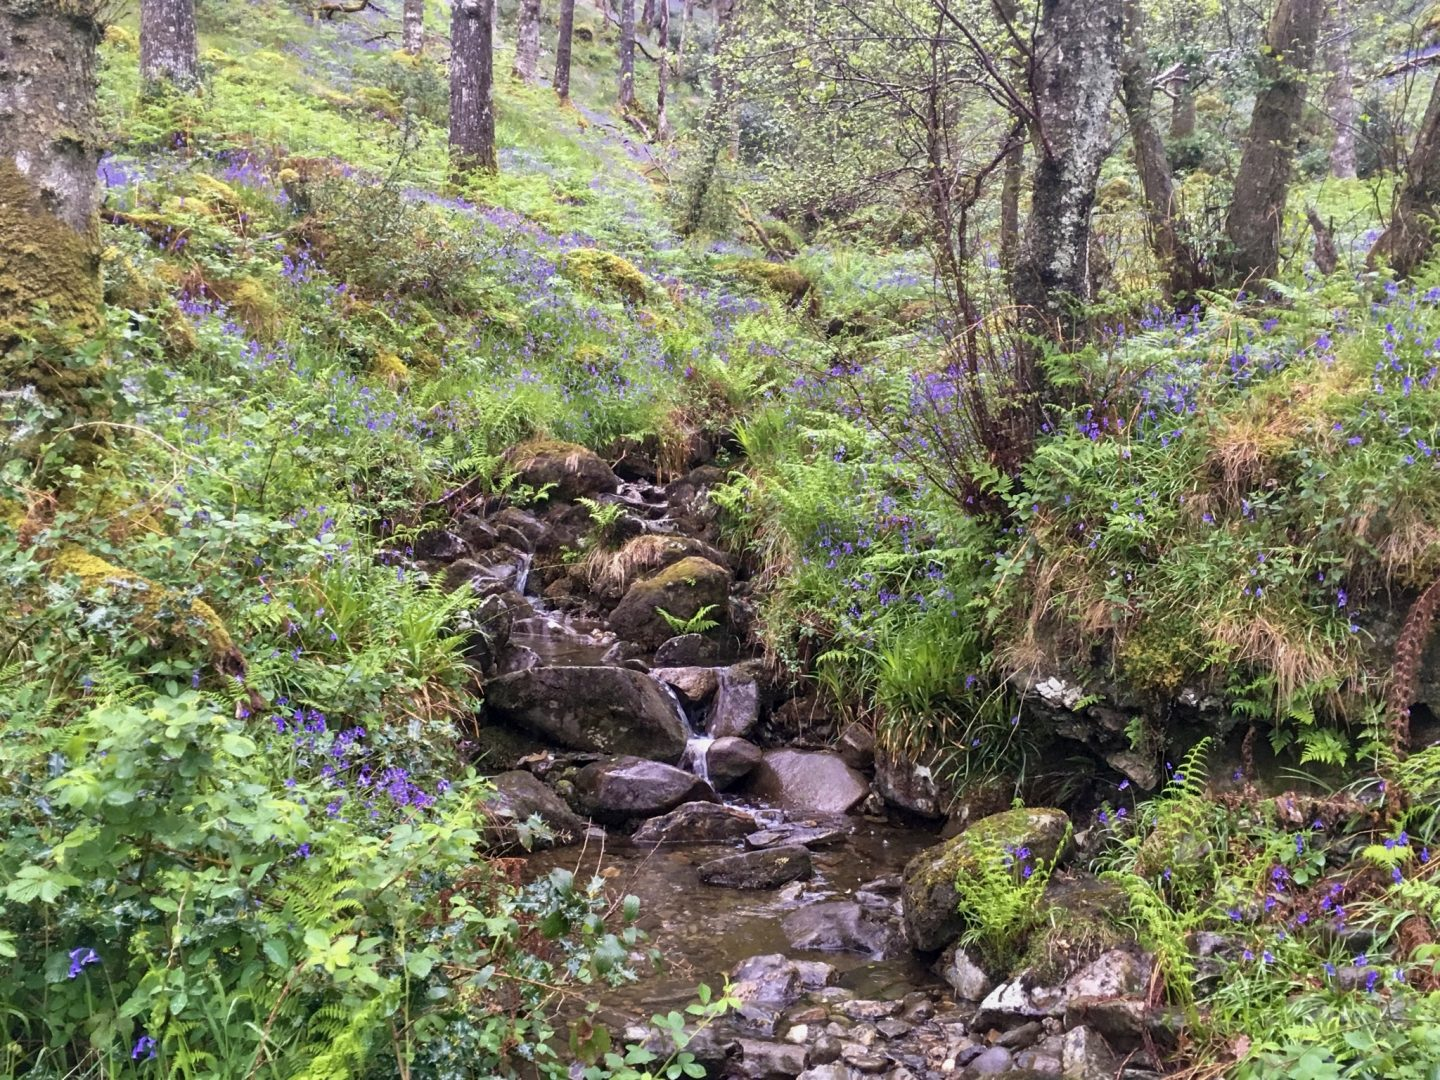 A rocky stream snaking through trees and grass, lined with purple flowers